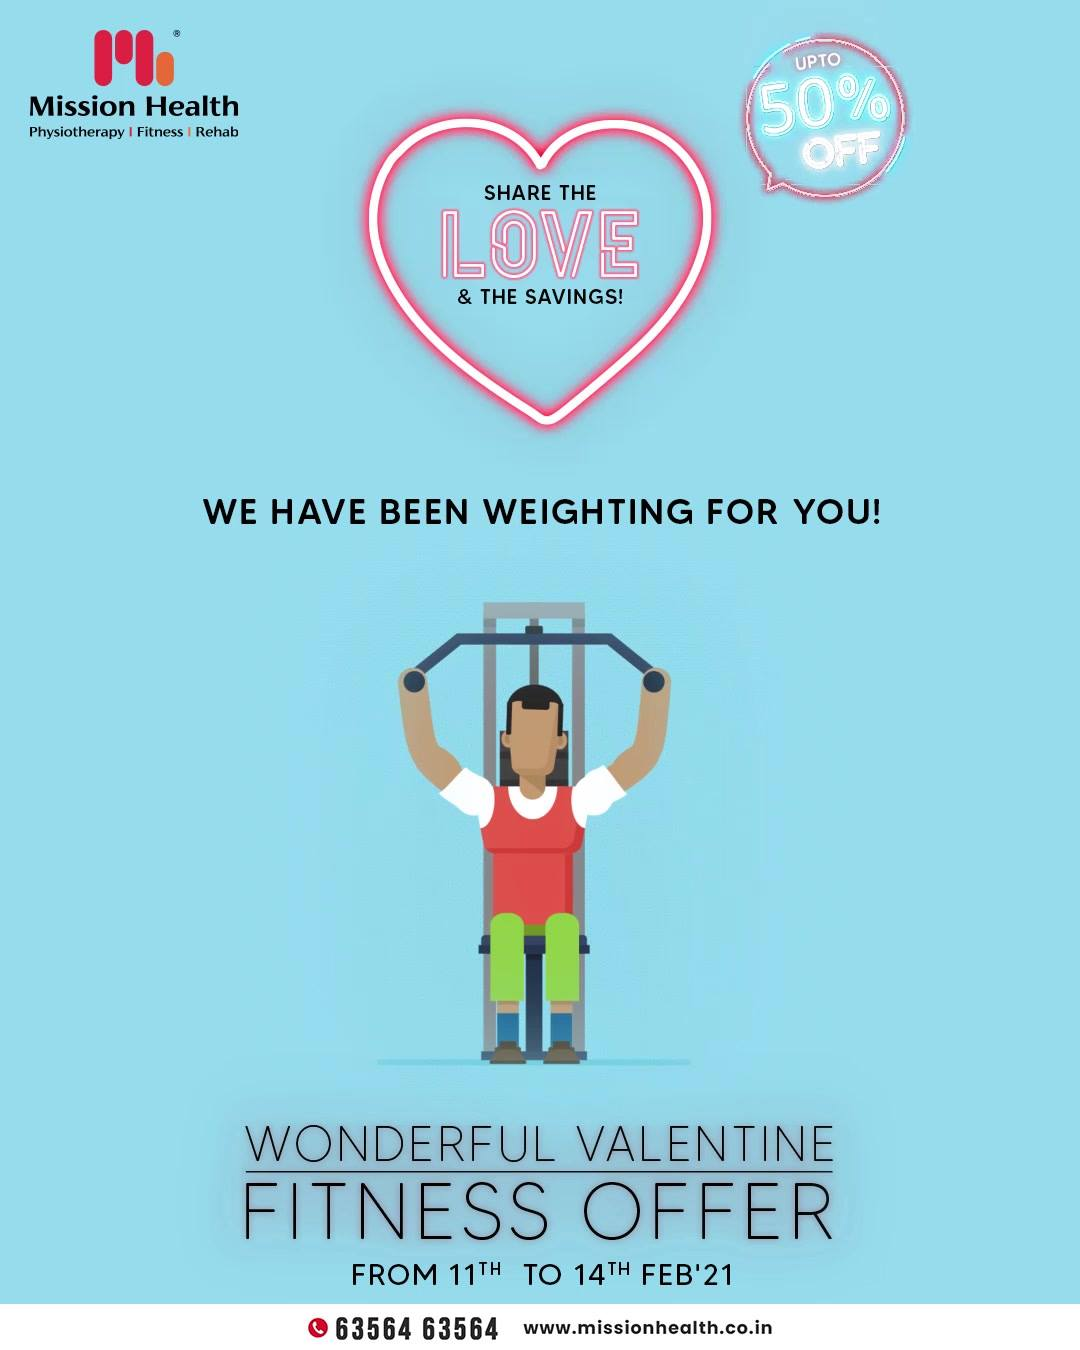 Hello fitness enthusiasts; are you yet to become a member of Mission Health? The wonderful valentine fitness offer is still weighting for you; share the love and the savings.  Make a move and get enrolled today because the offer is valid only till 14th February 2021.  Mission Health Helpline Number: +916356463564 www.missionhealth.co.in  #ValentineFitnessOffer #FitnessisFirstLove #MissionHealth #Fitness #PersonalTraining #FatToFit #Transform #GroupFitness #Slimming #MovementIsLife